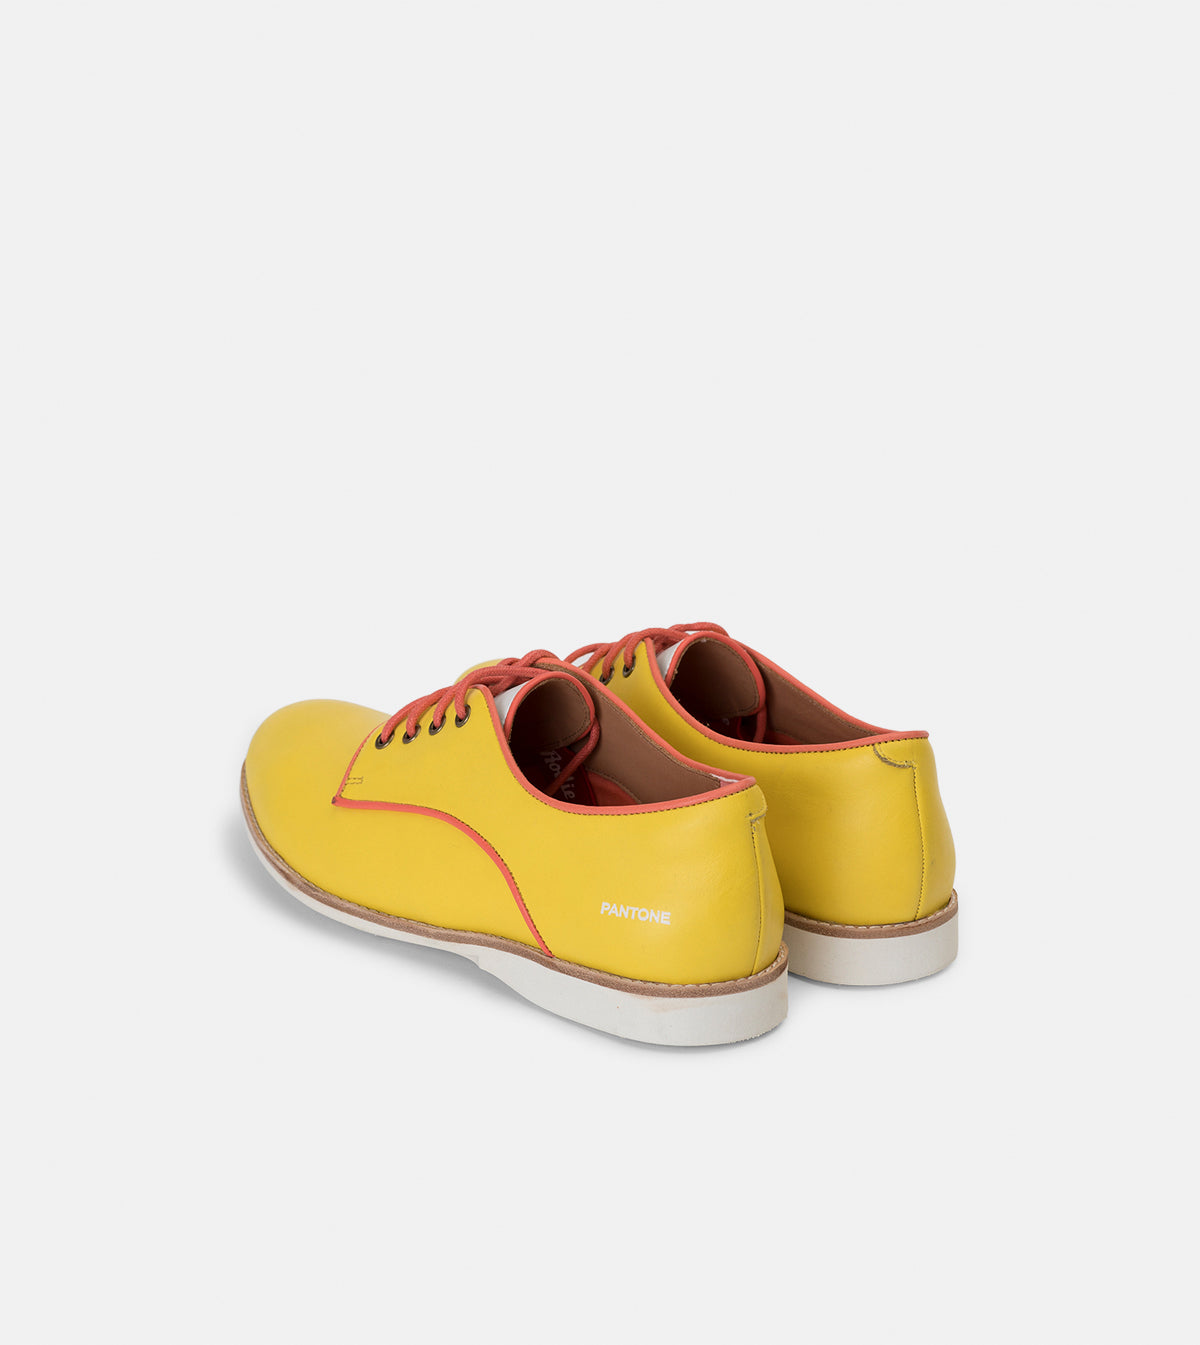 Rollie x Pantone Derby: Vibrant Yellow 13-0858